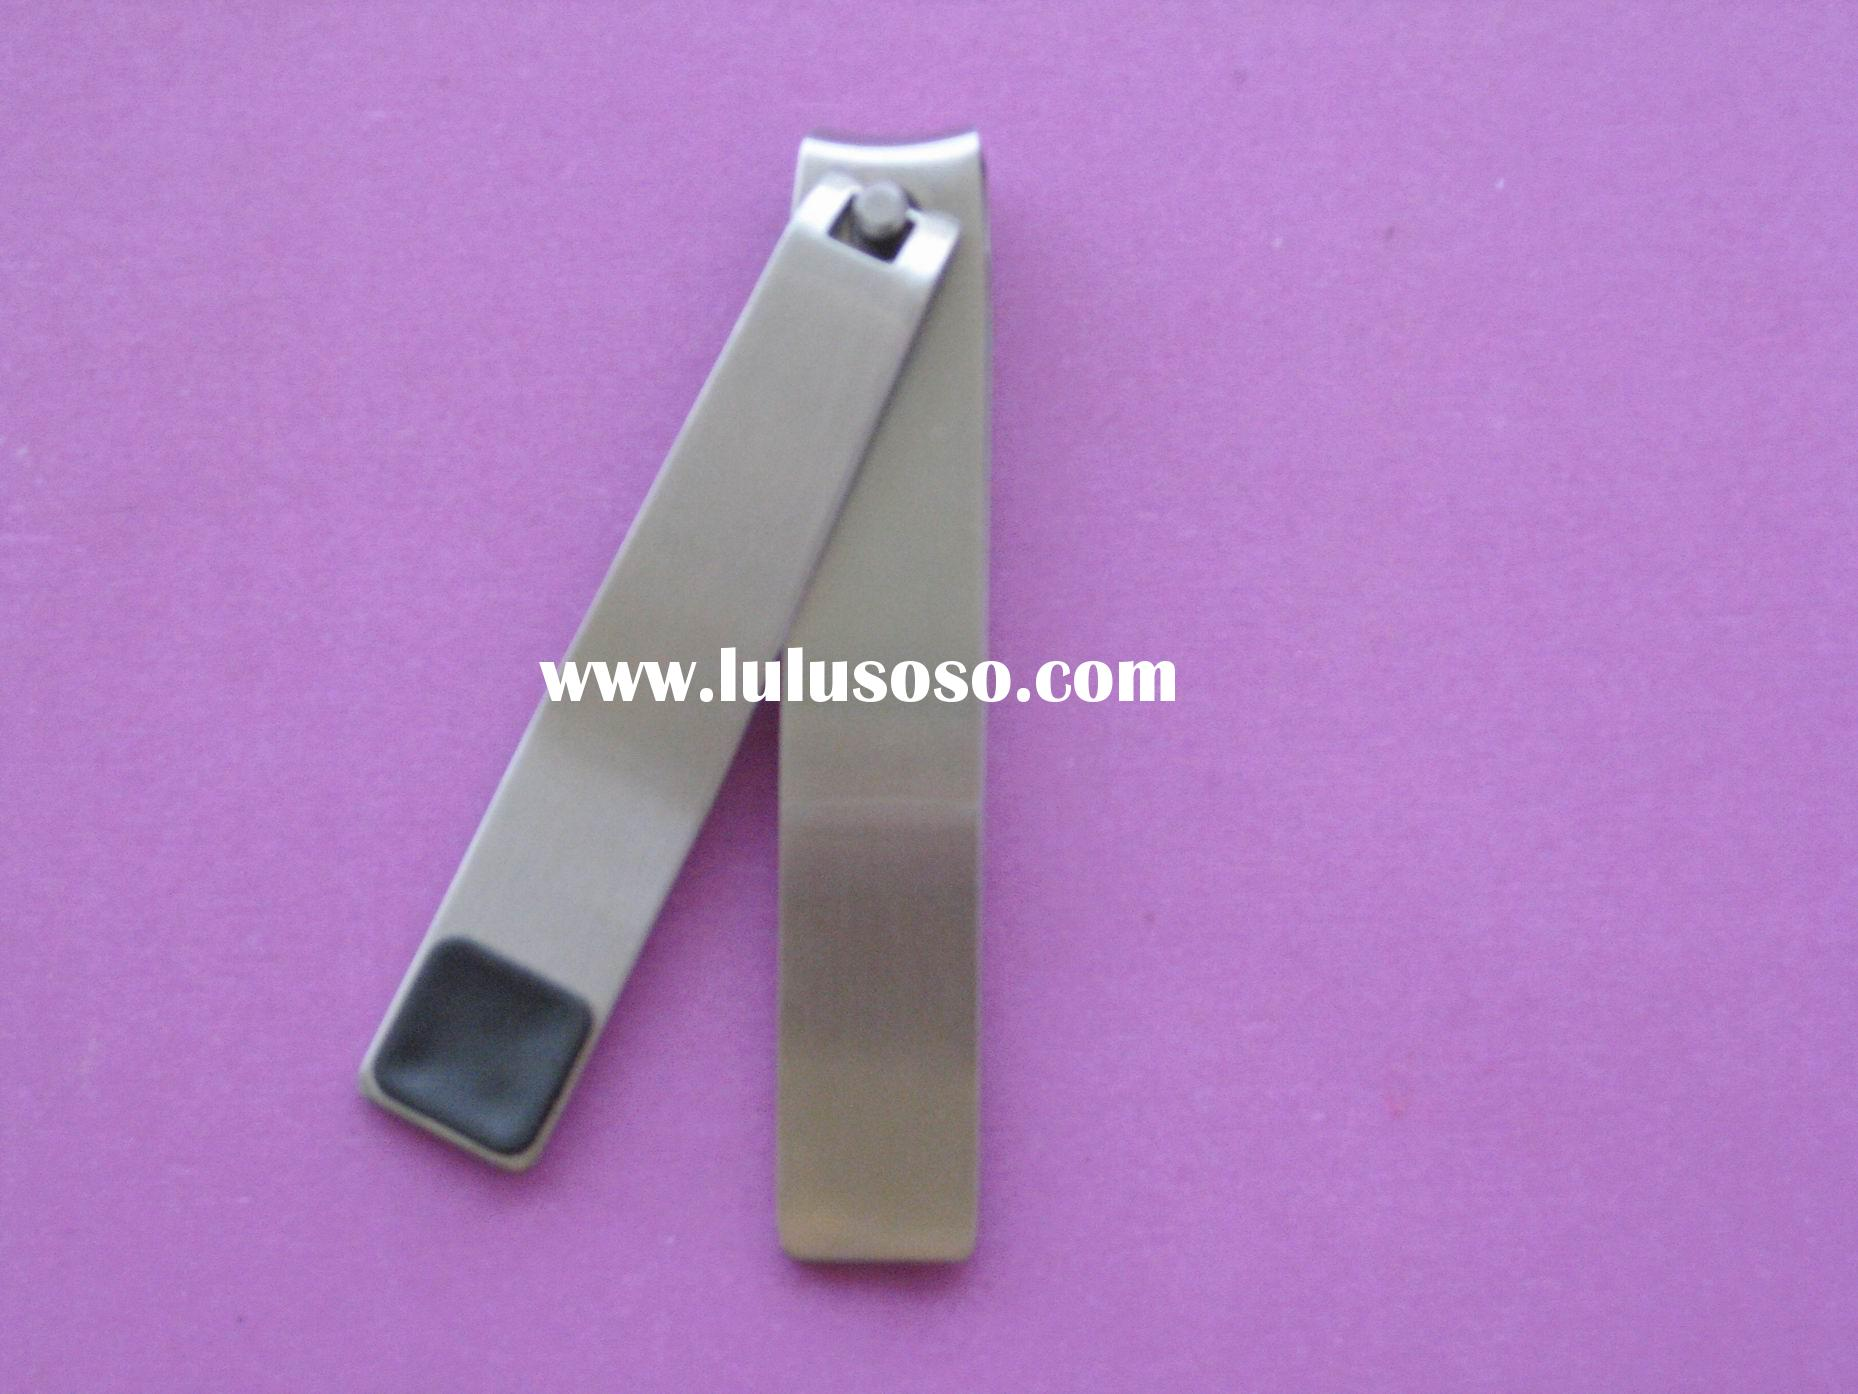 nail clippers/nail cutter/nail care/toe nail clippers/manicure implement/